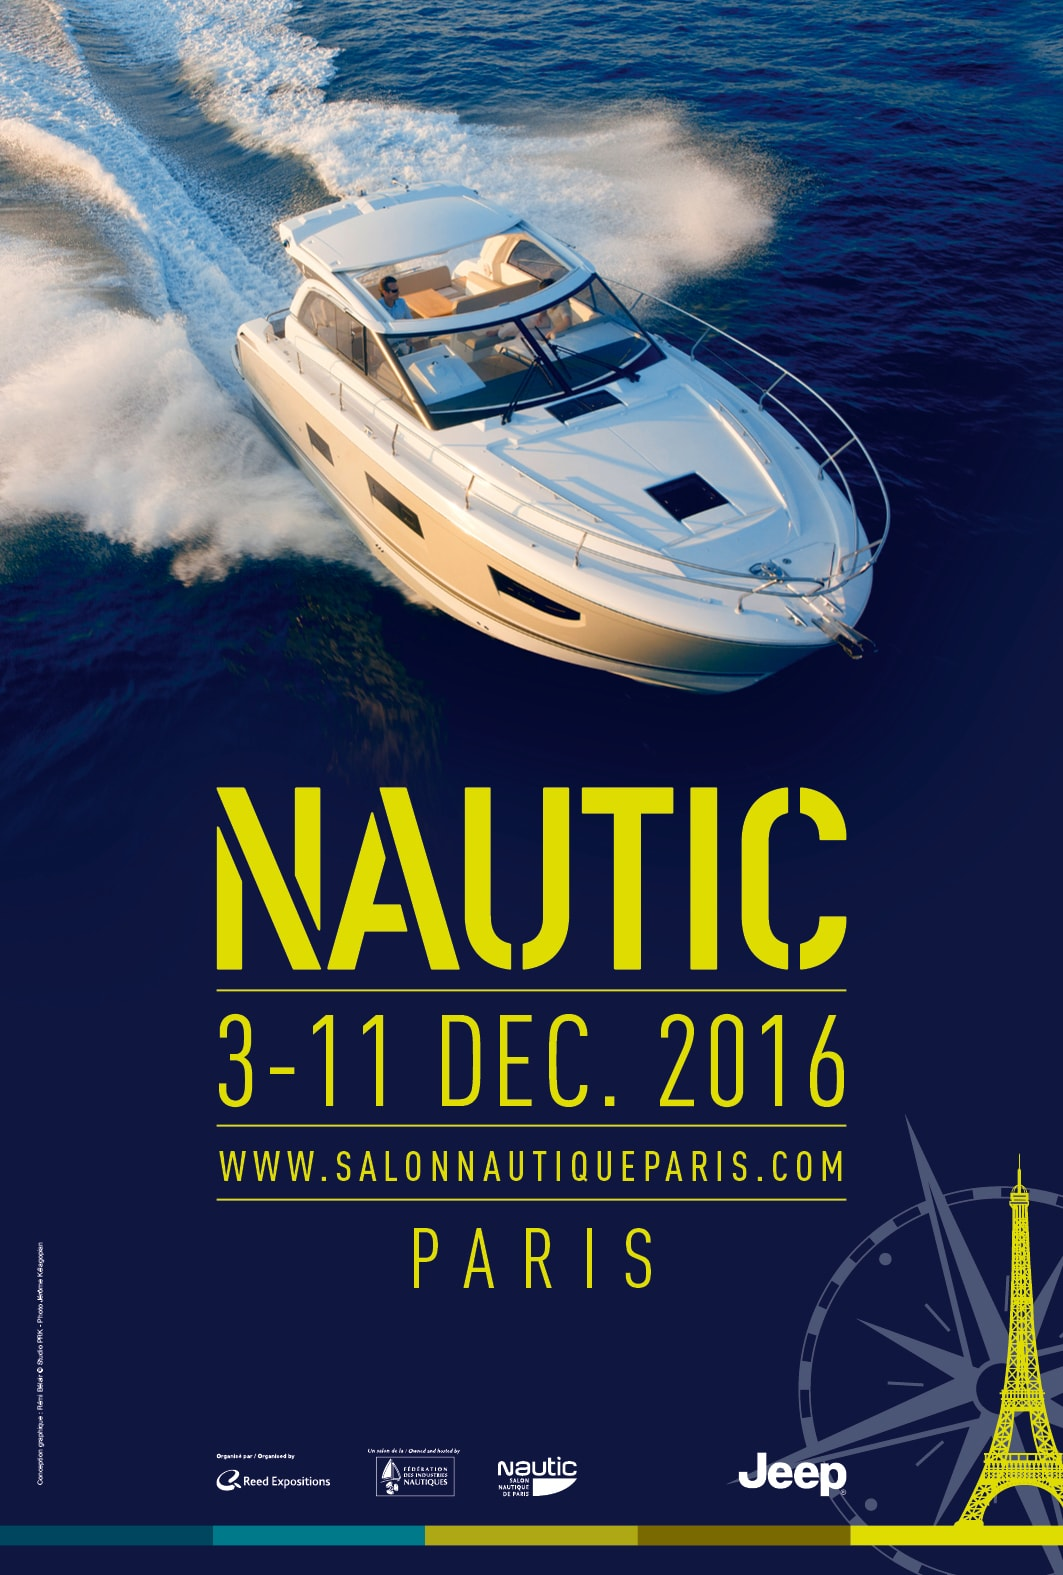 Meet OCQUETEAU at Paris boat show